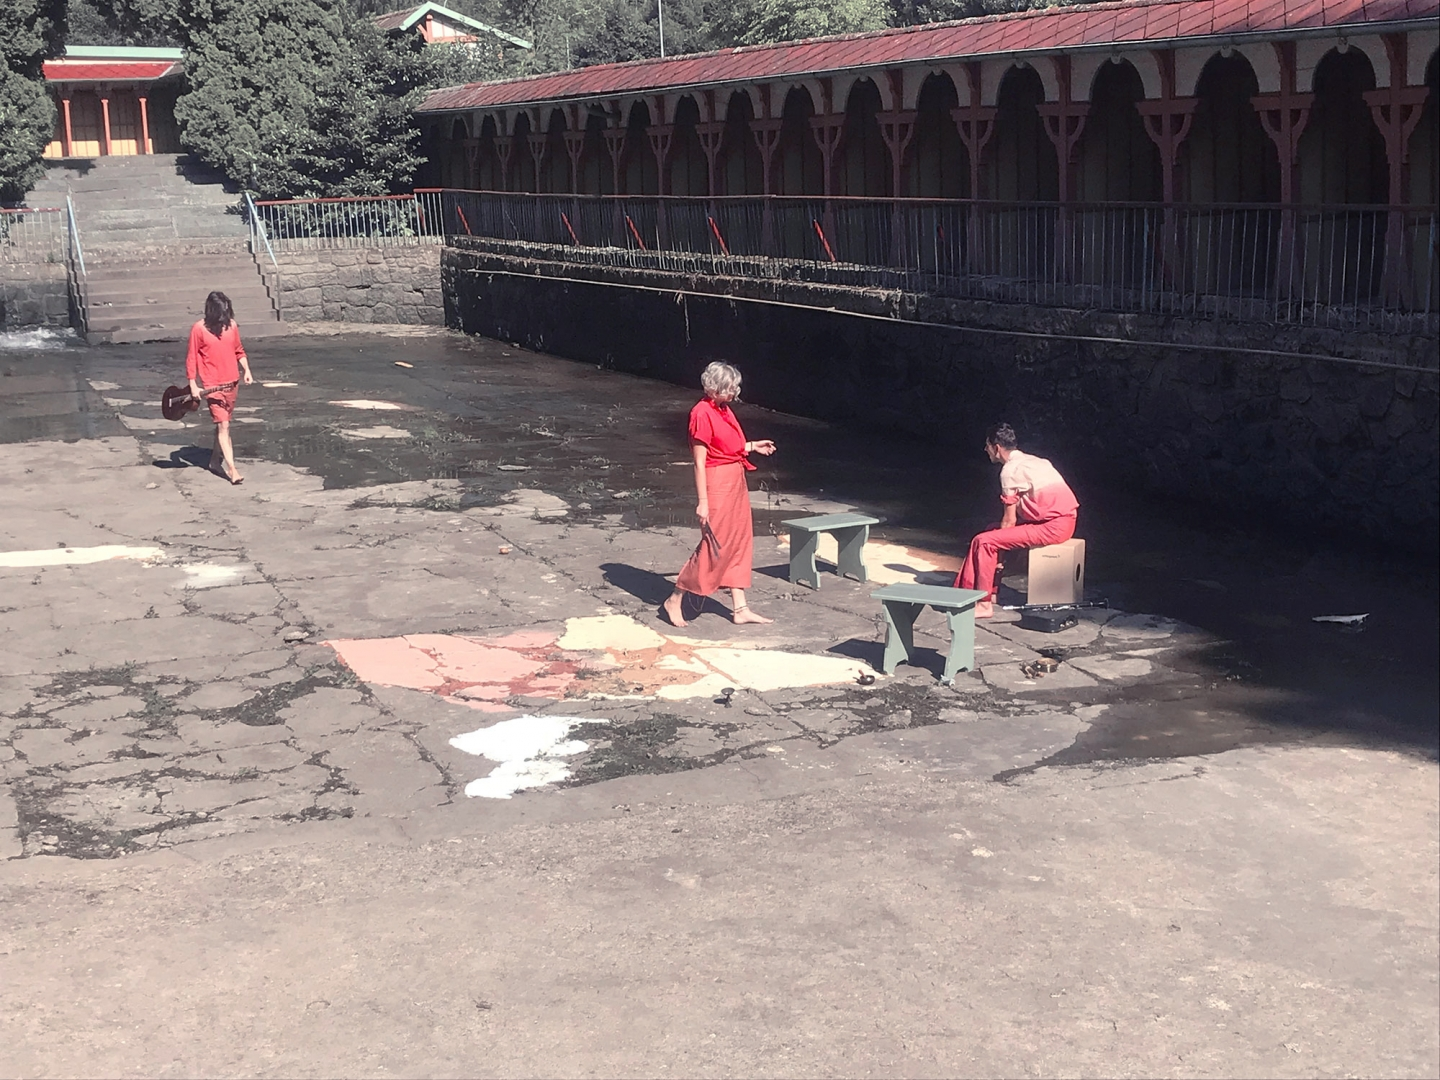 8. A Few Liters of Dried Rituals, sonic event, River and Sun Spa, Luhačovice, CZ, 2019